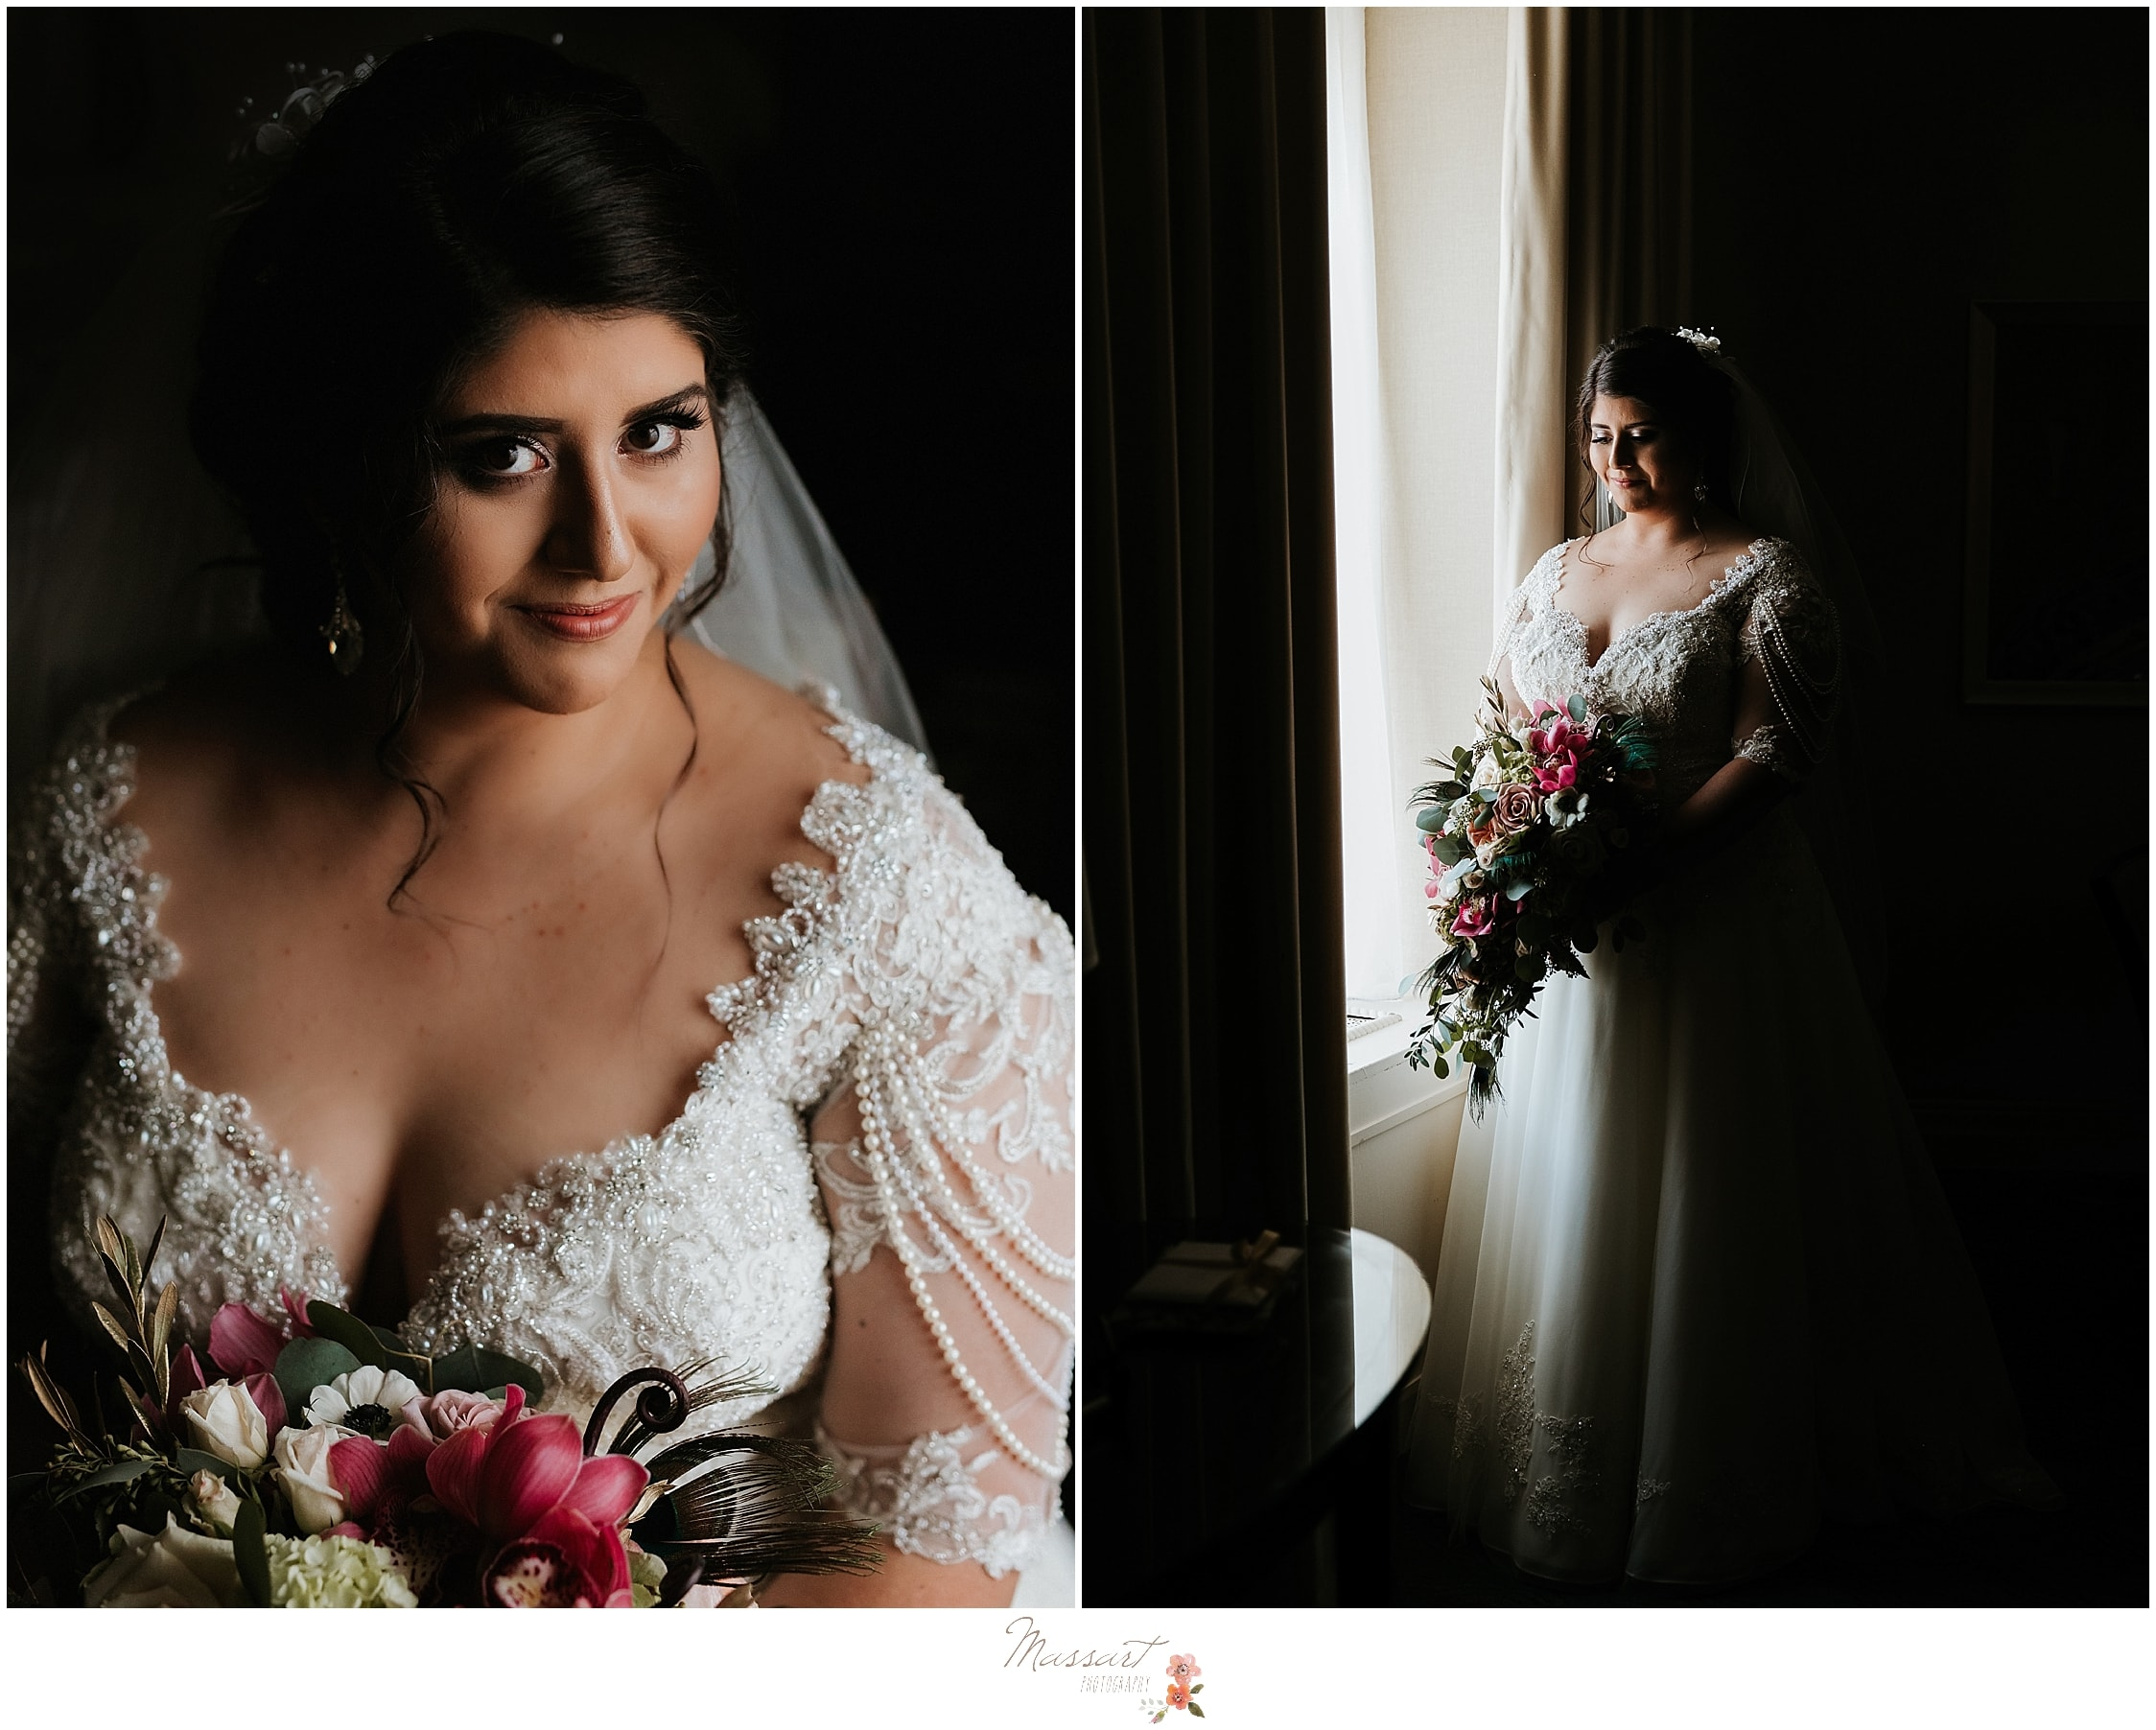 Stunning Greek bride photographed by RI, MA, CT wedding photographers Massart Photography